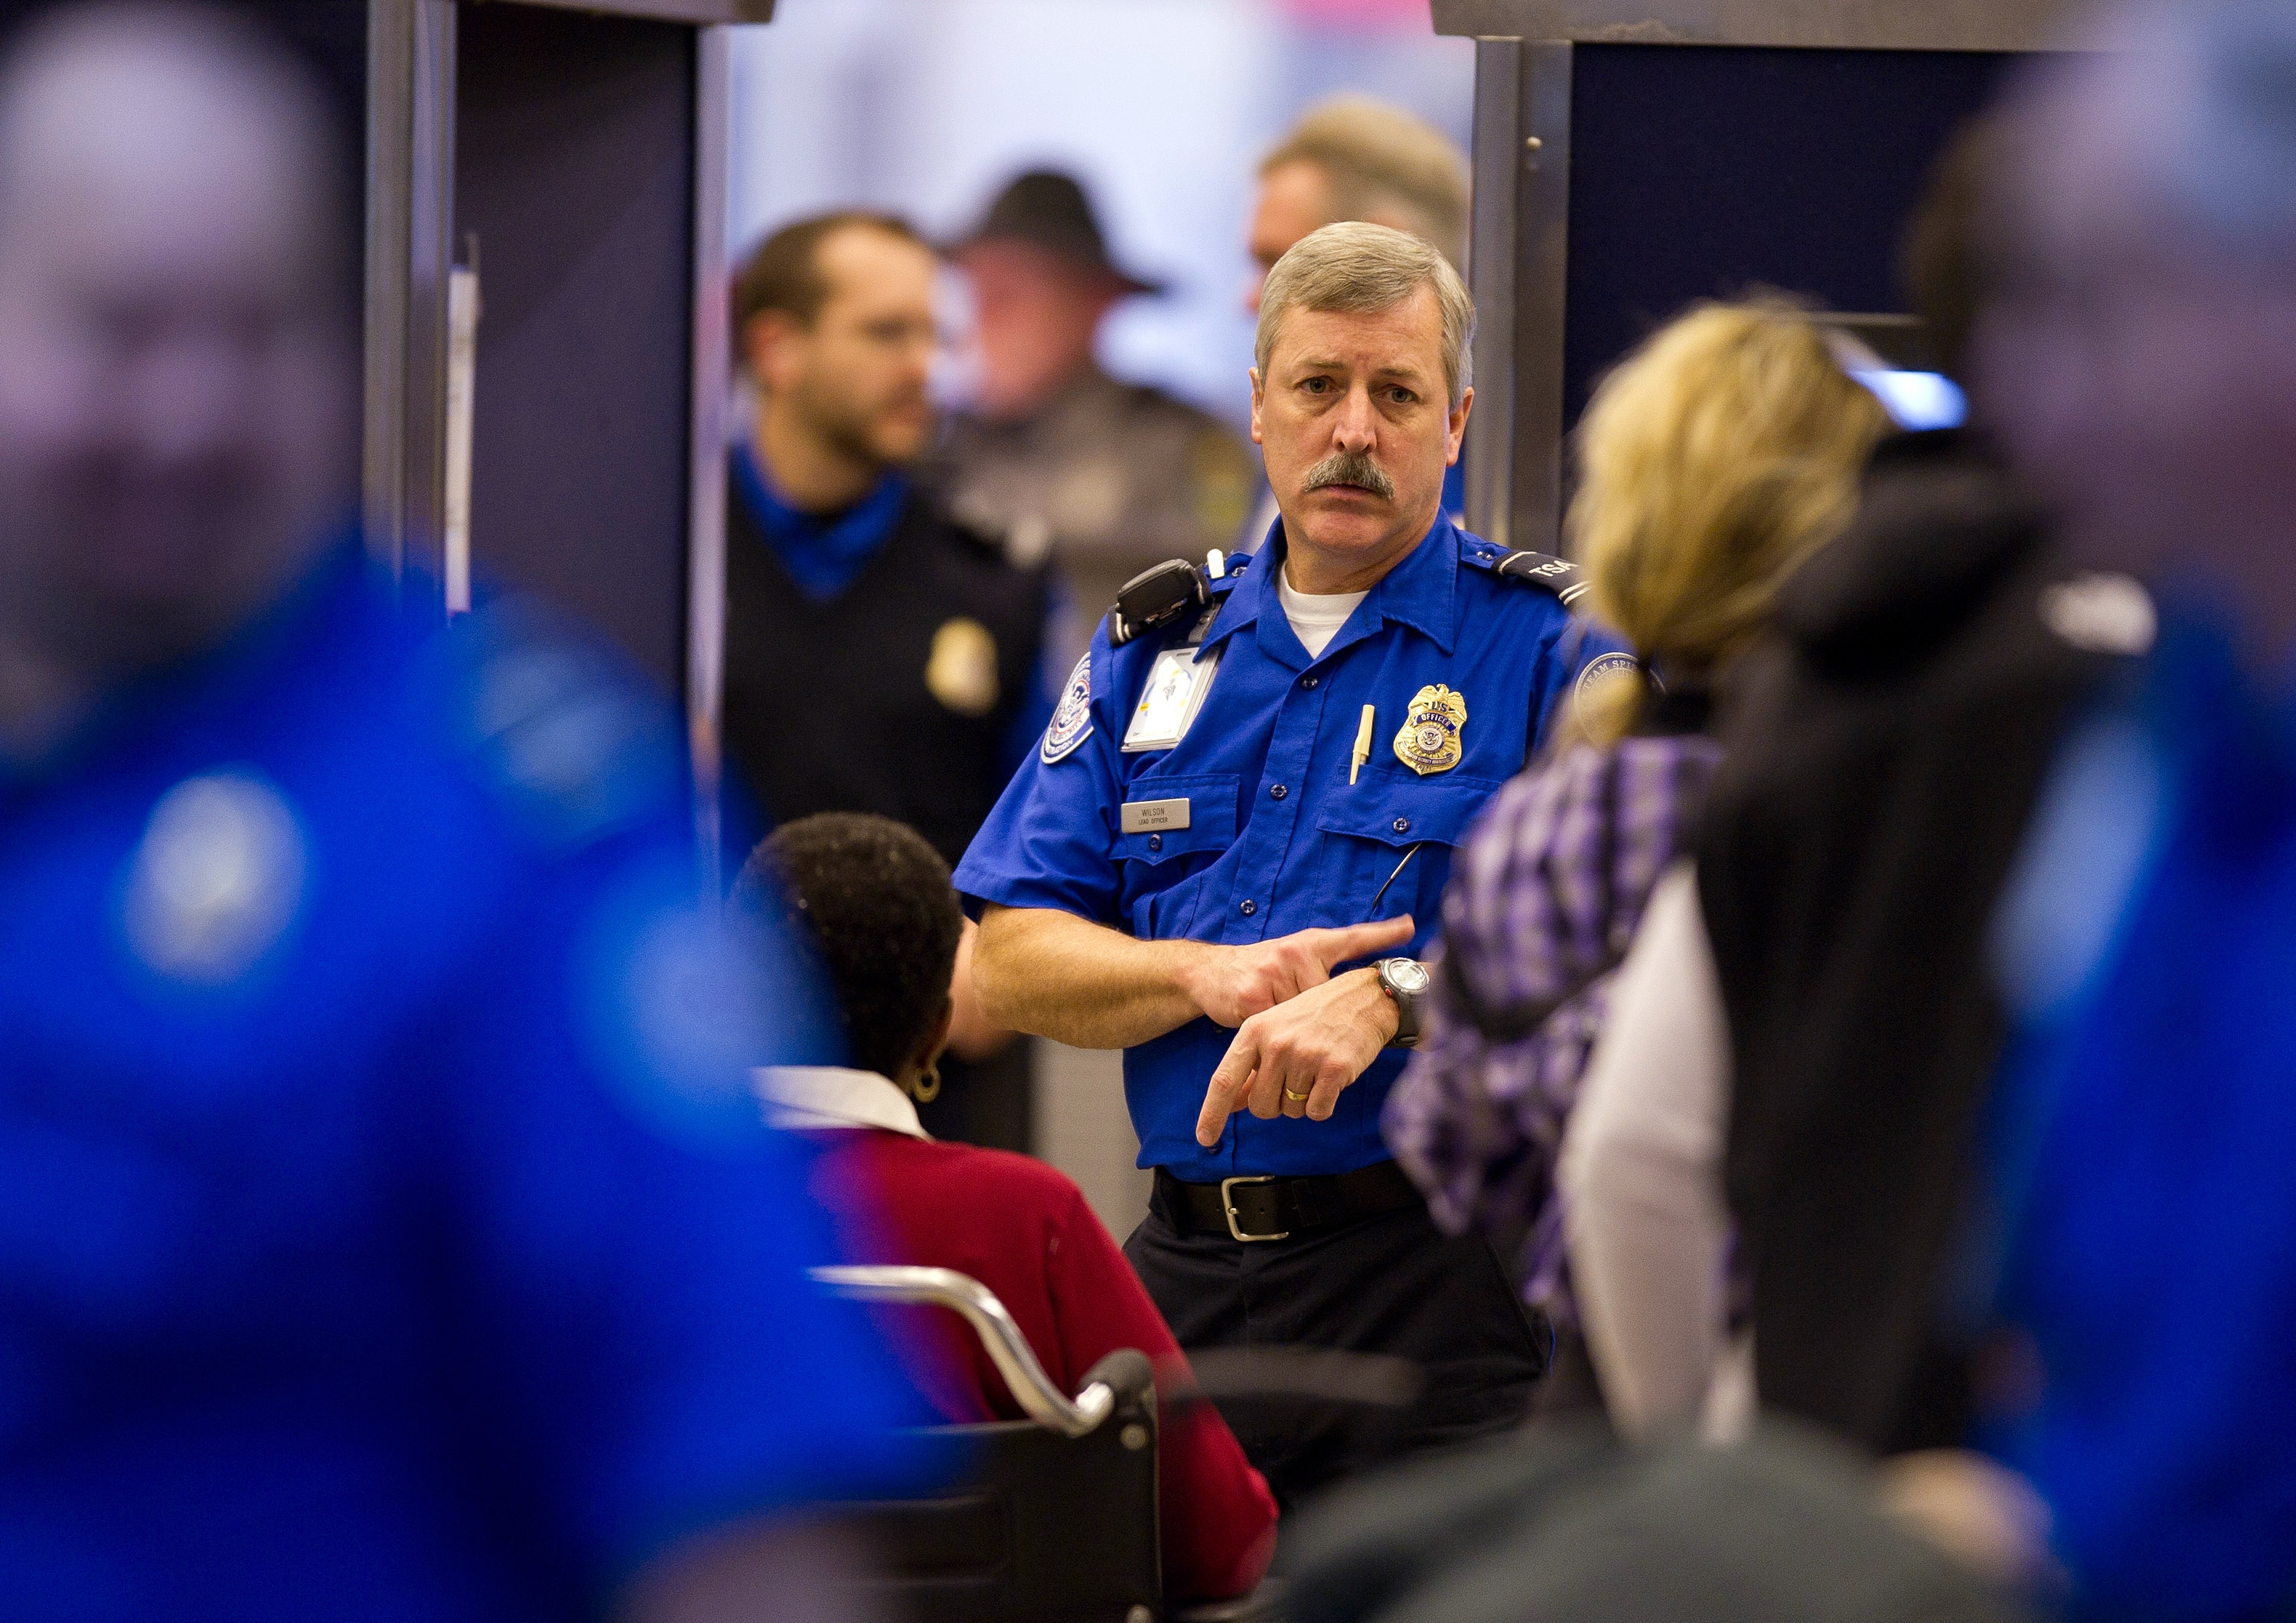 A TSA agent instructs travelers through the security lines at the Pittsburgh International Airport on Nov. 24, 2010. (Jeff Swensen/Getty Images)